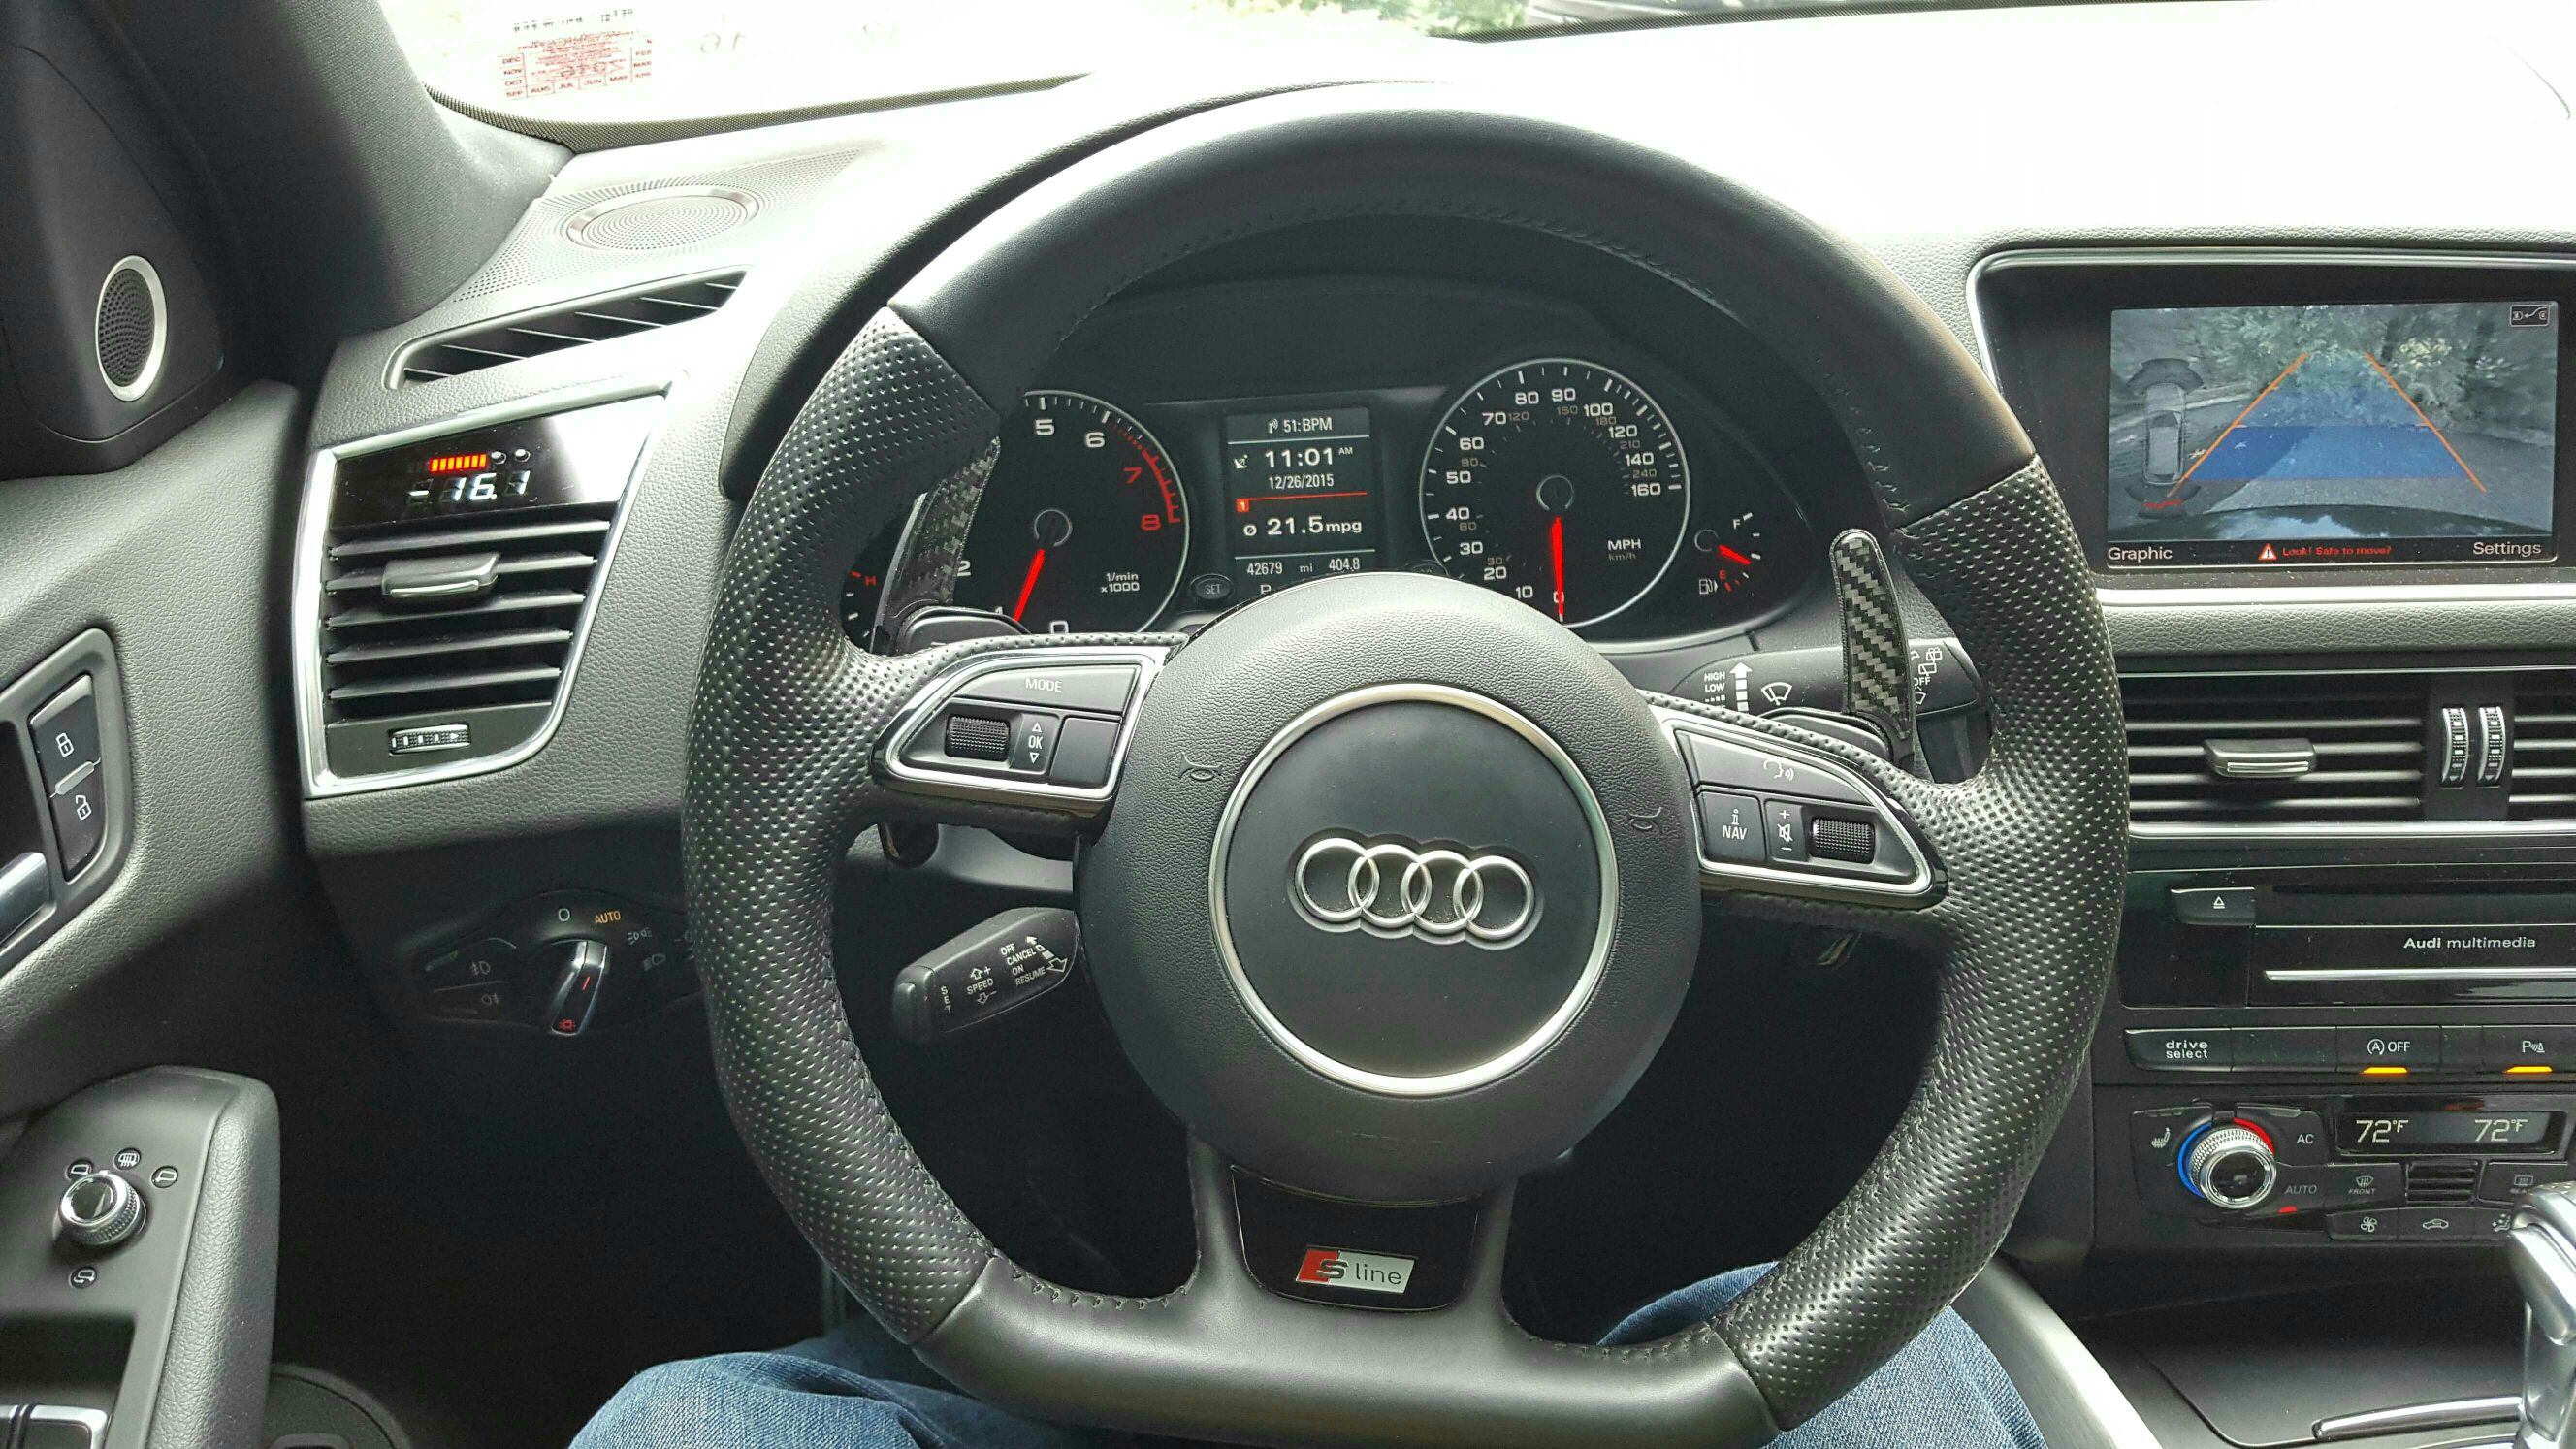 first photo size attachment world mki page thread views audiworld official westchester name audi forums discussion mb